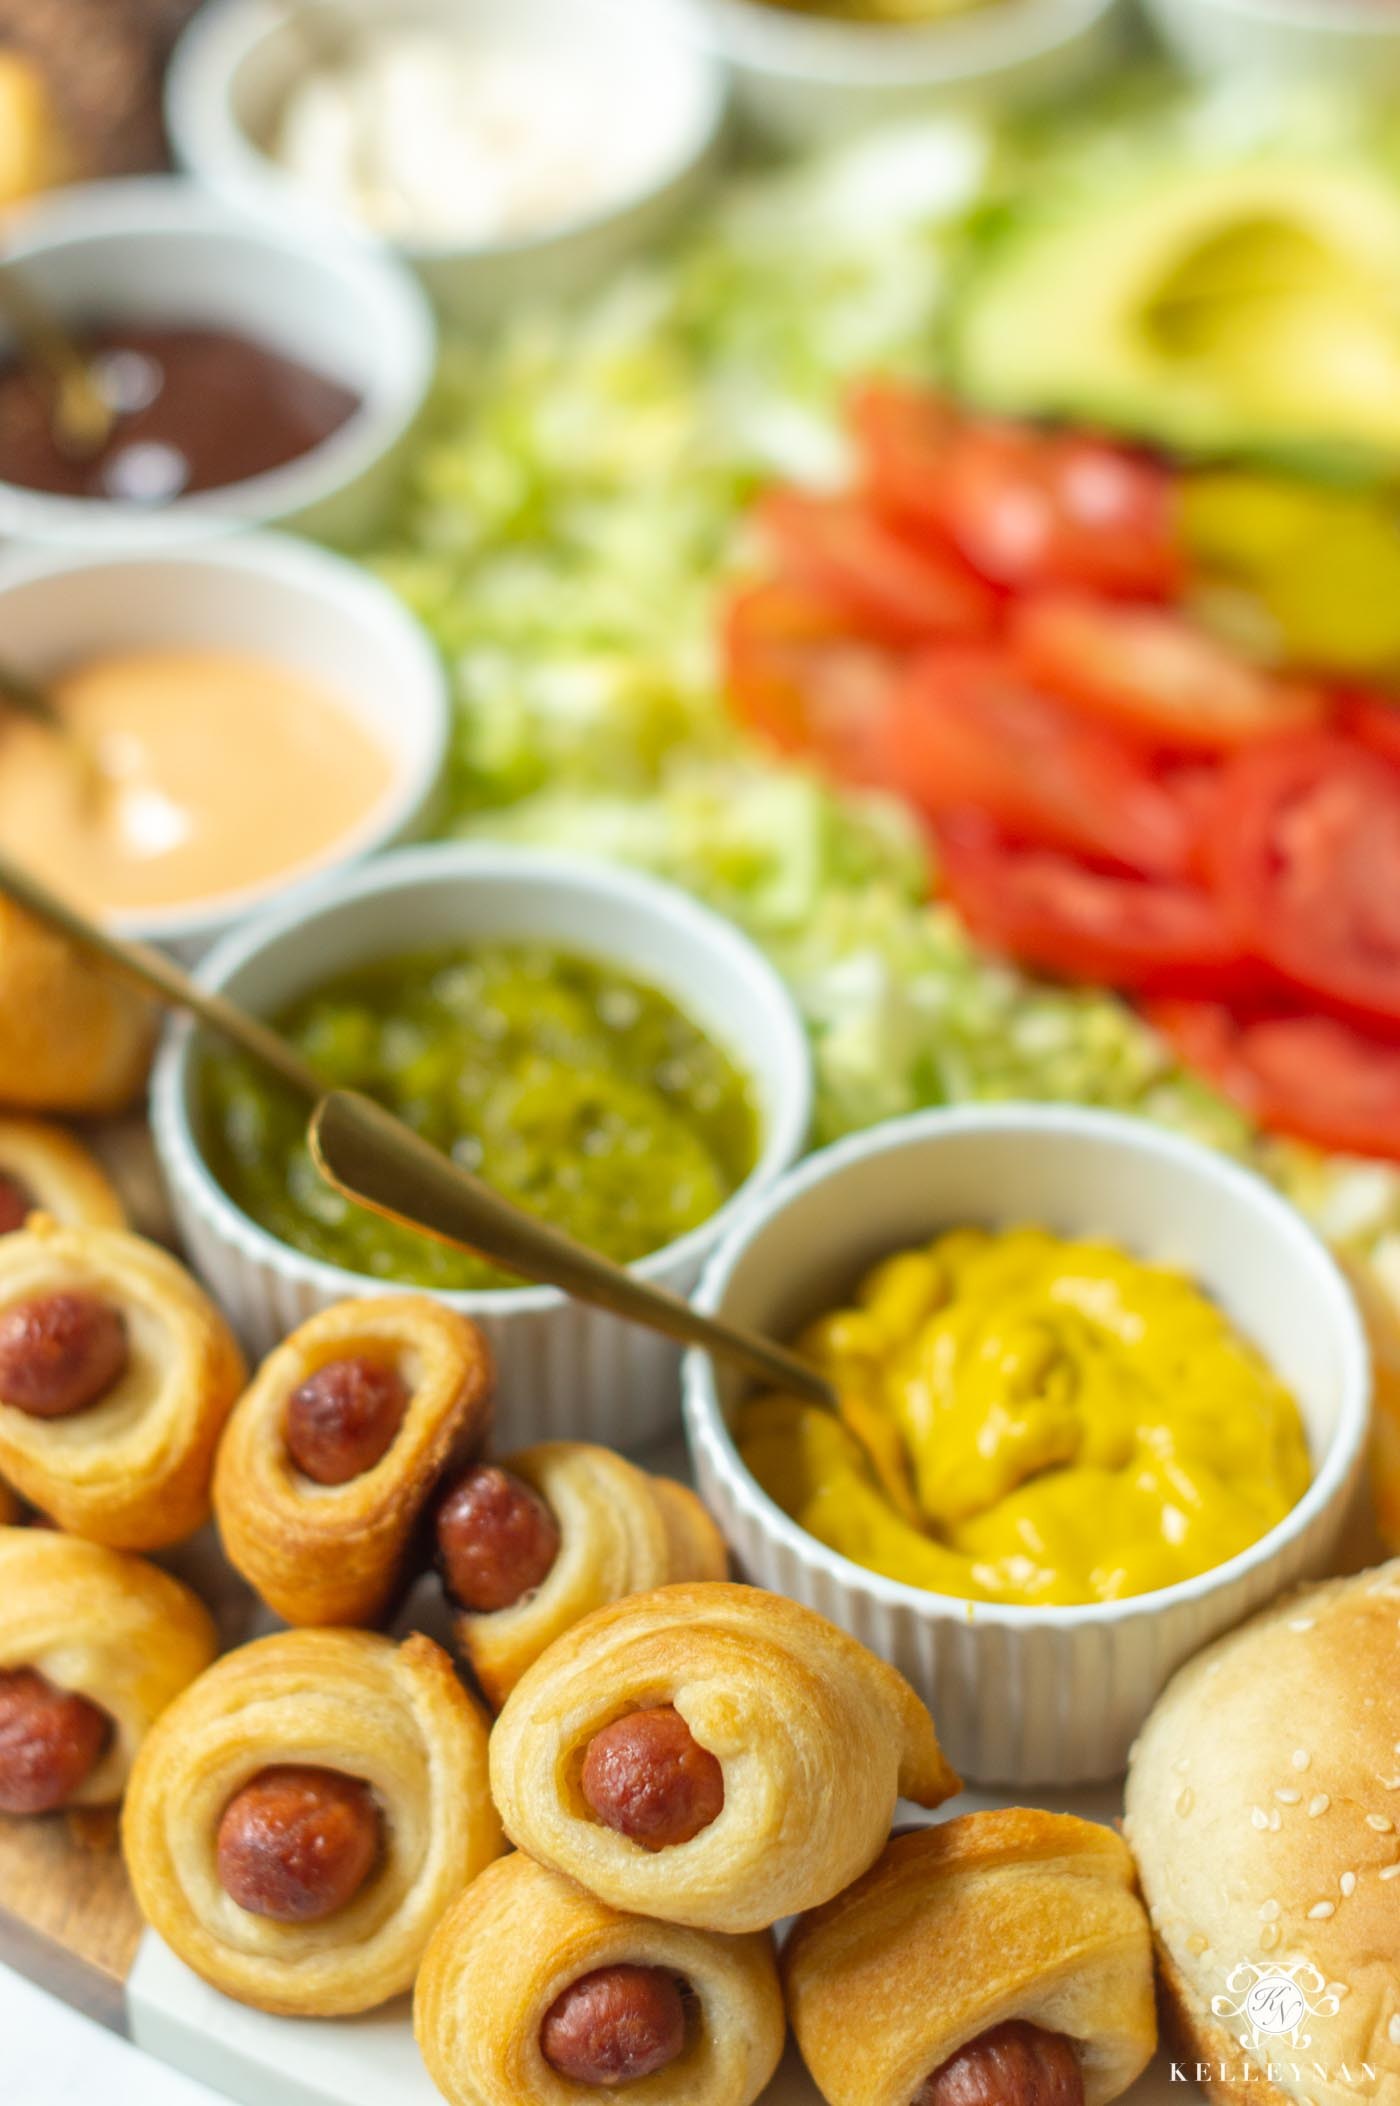 Build Your Own Slider Bar -- A Charcuterie Board with All the Toppings!